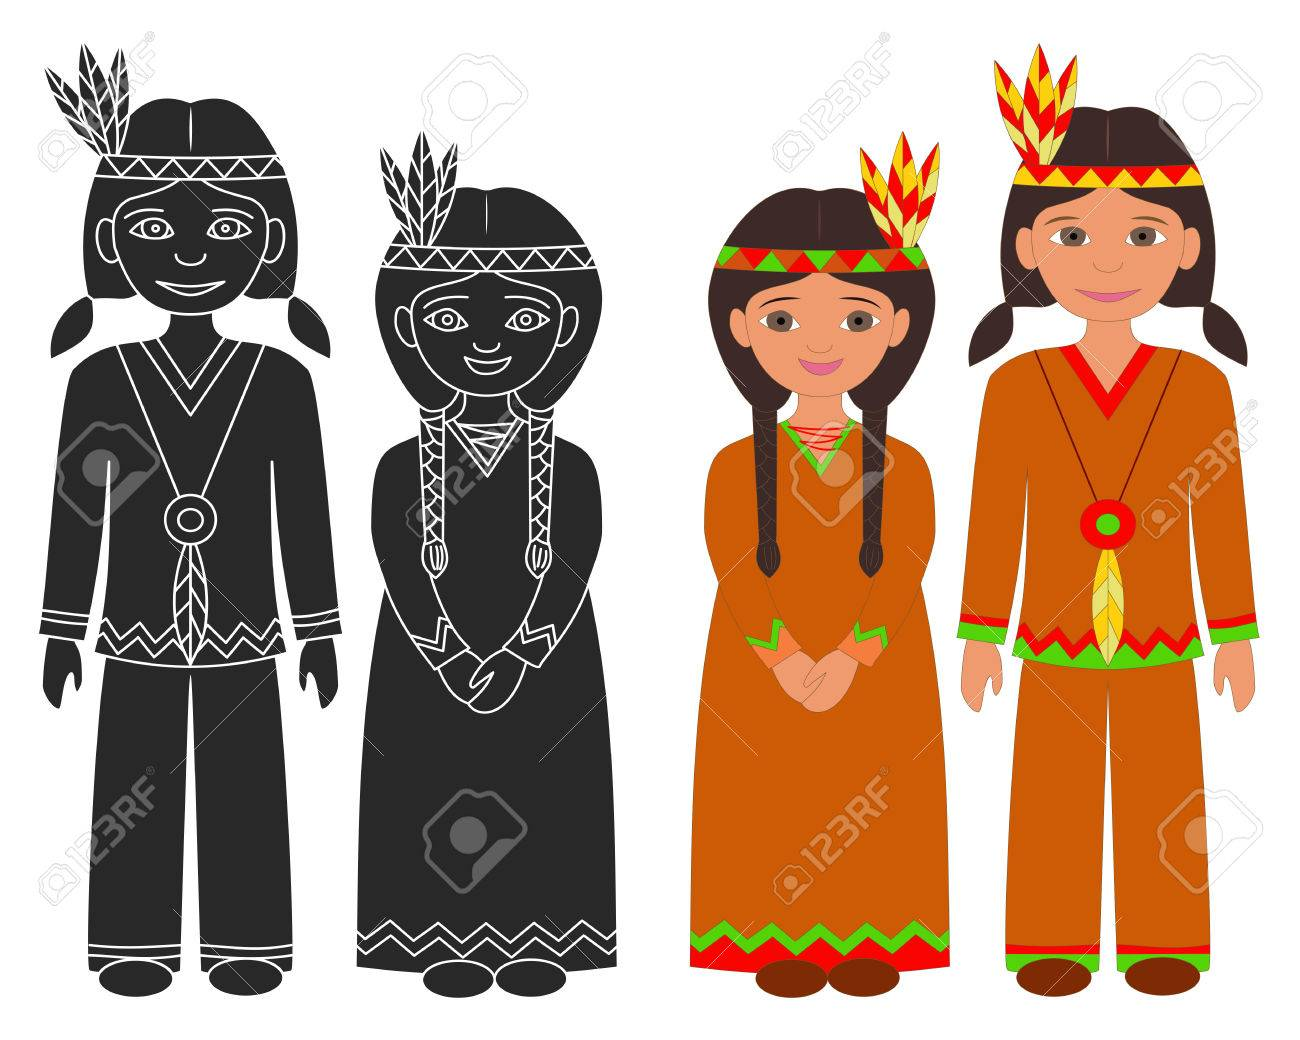 Hand Drawn Native American Indian Boy And Girl Thanksgiving Isolated Graphic Elements On White Background